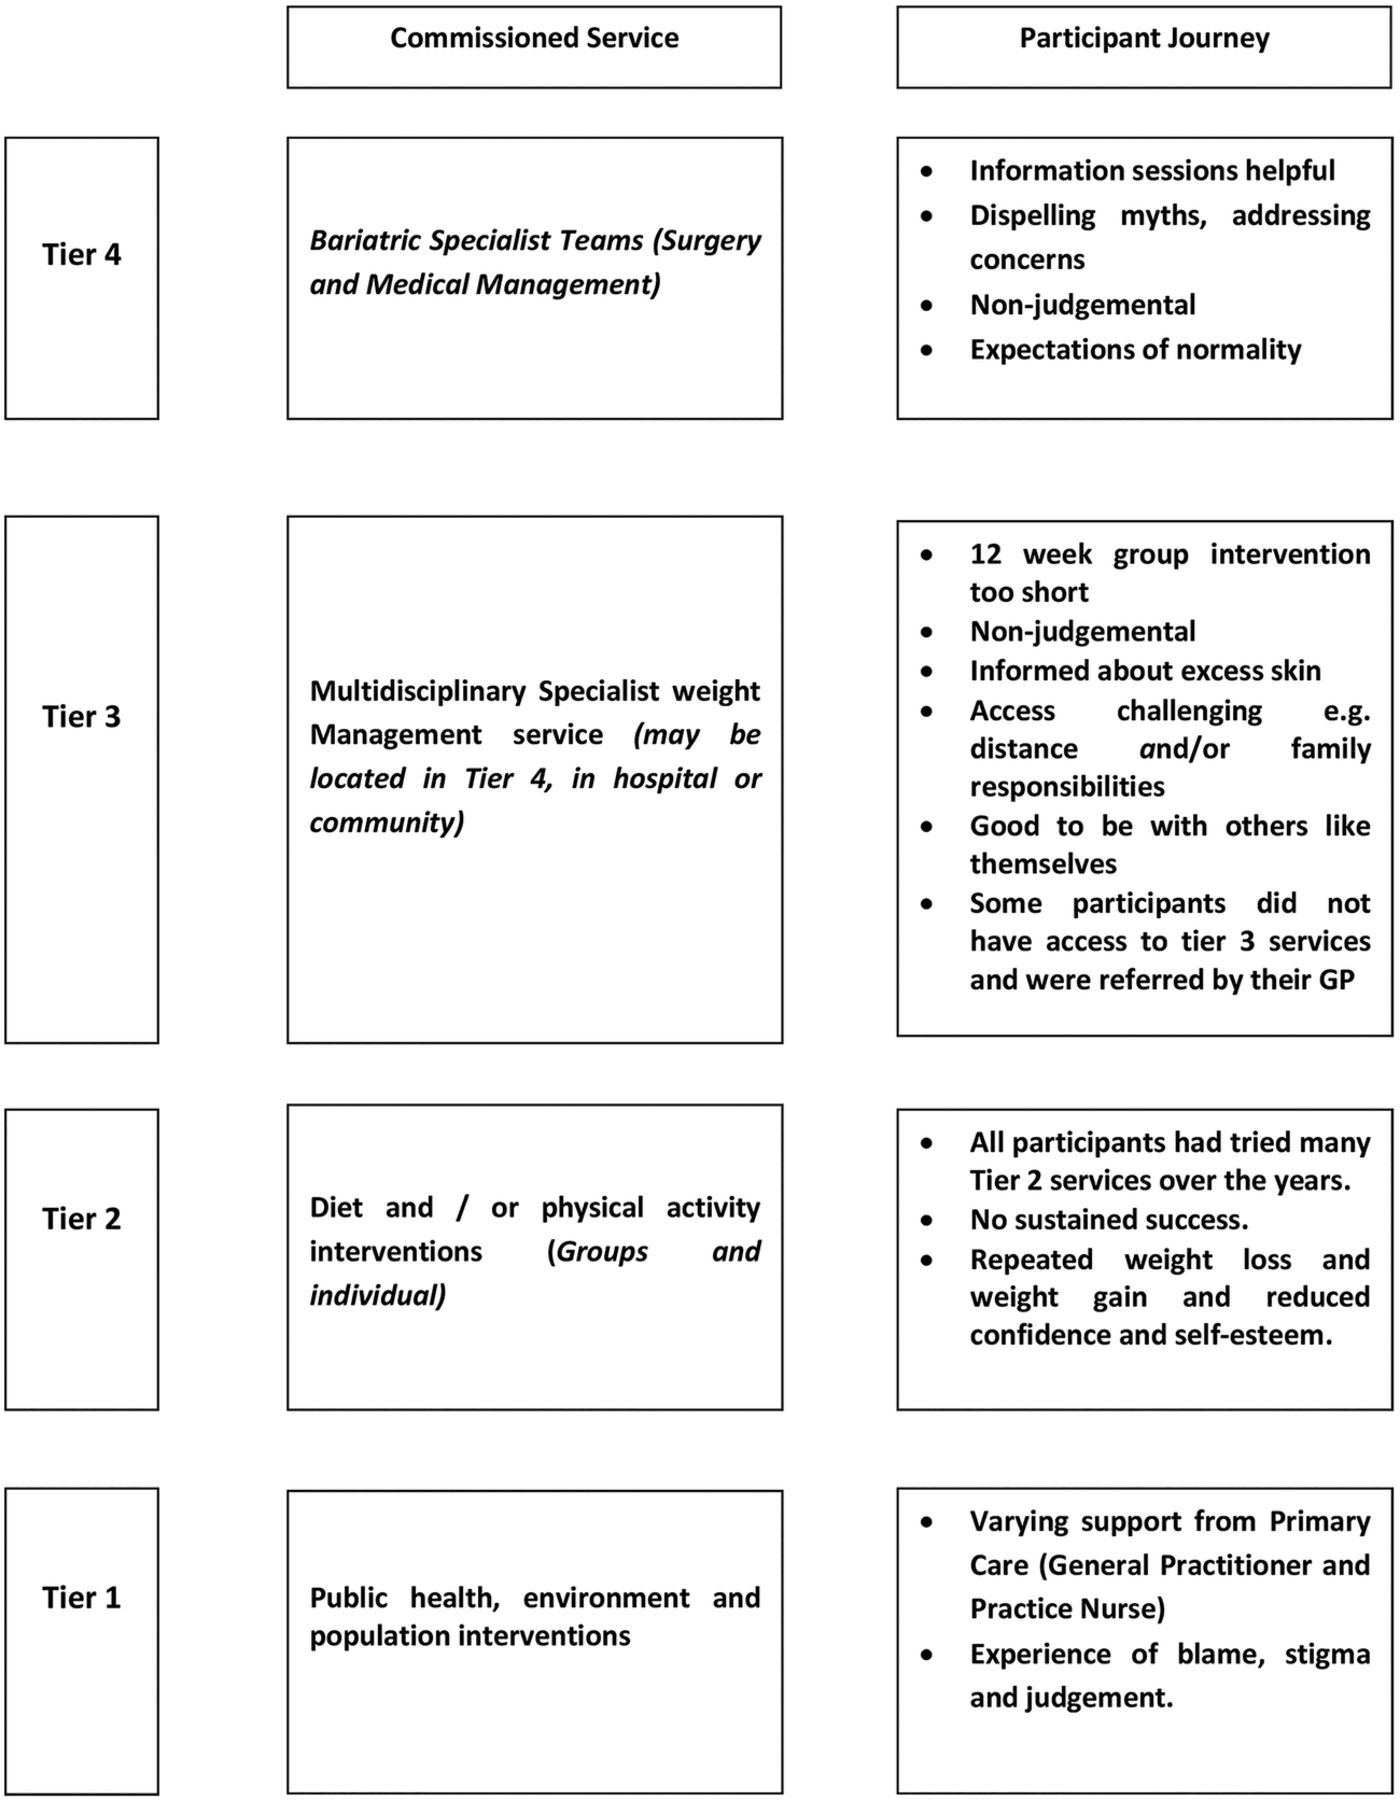 Expectations And Patients Experiences Of Obesity Prior To Bariatric